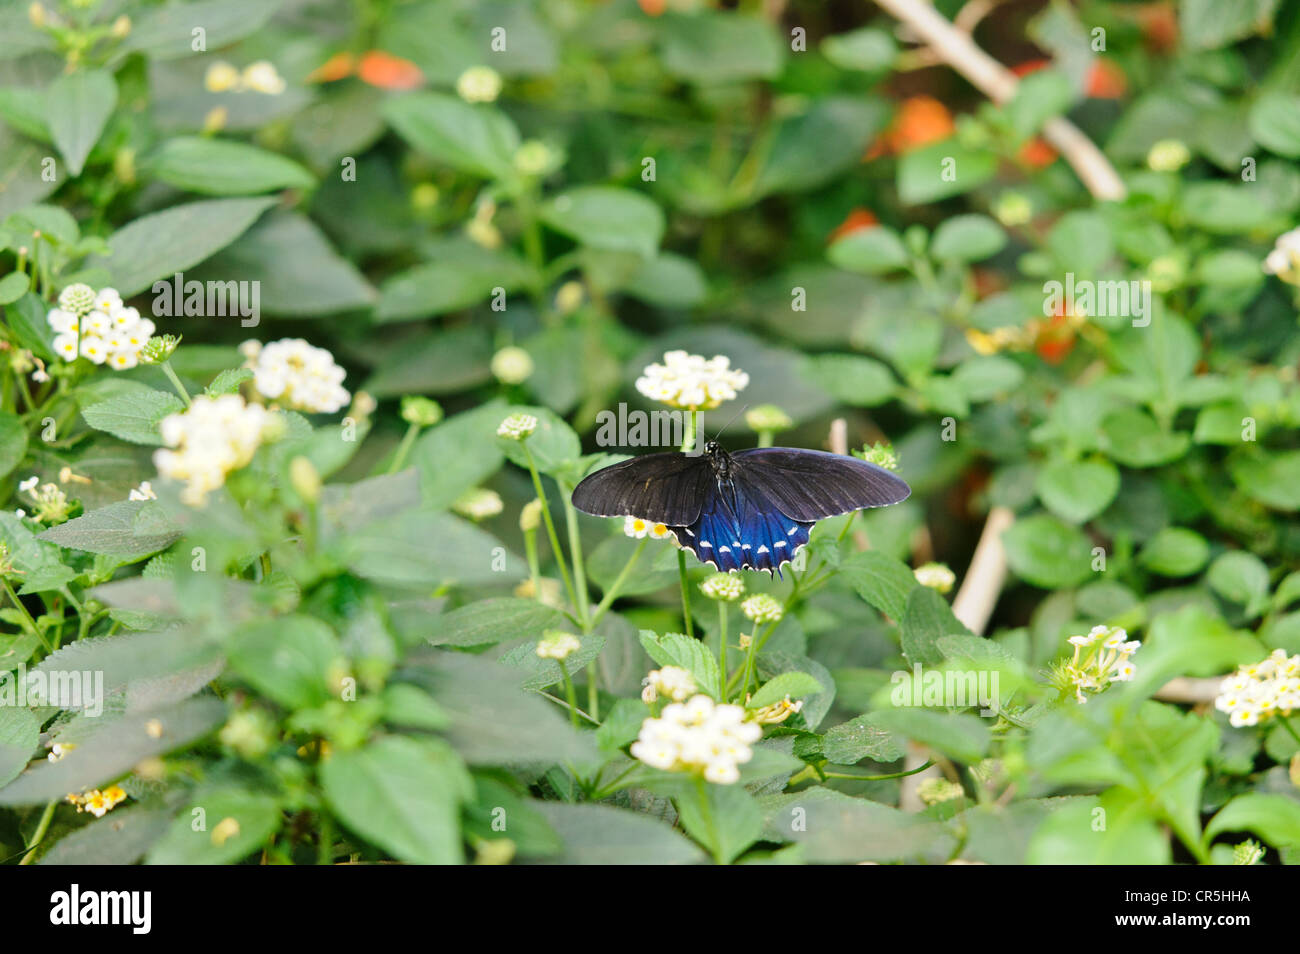 pipevine-swallowtail-butterfly-battus-philenor-perched-on-shrub-verbena-CR5HHA.jpg